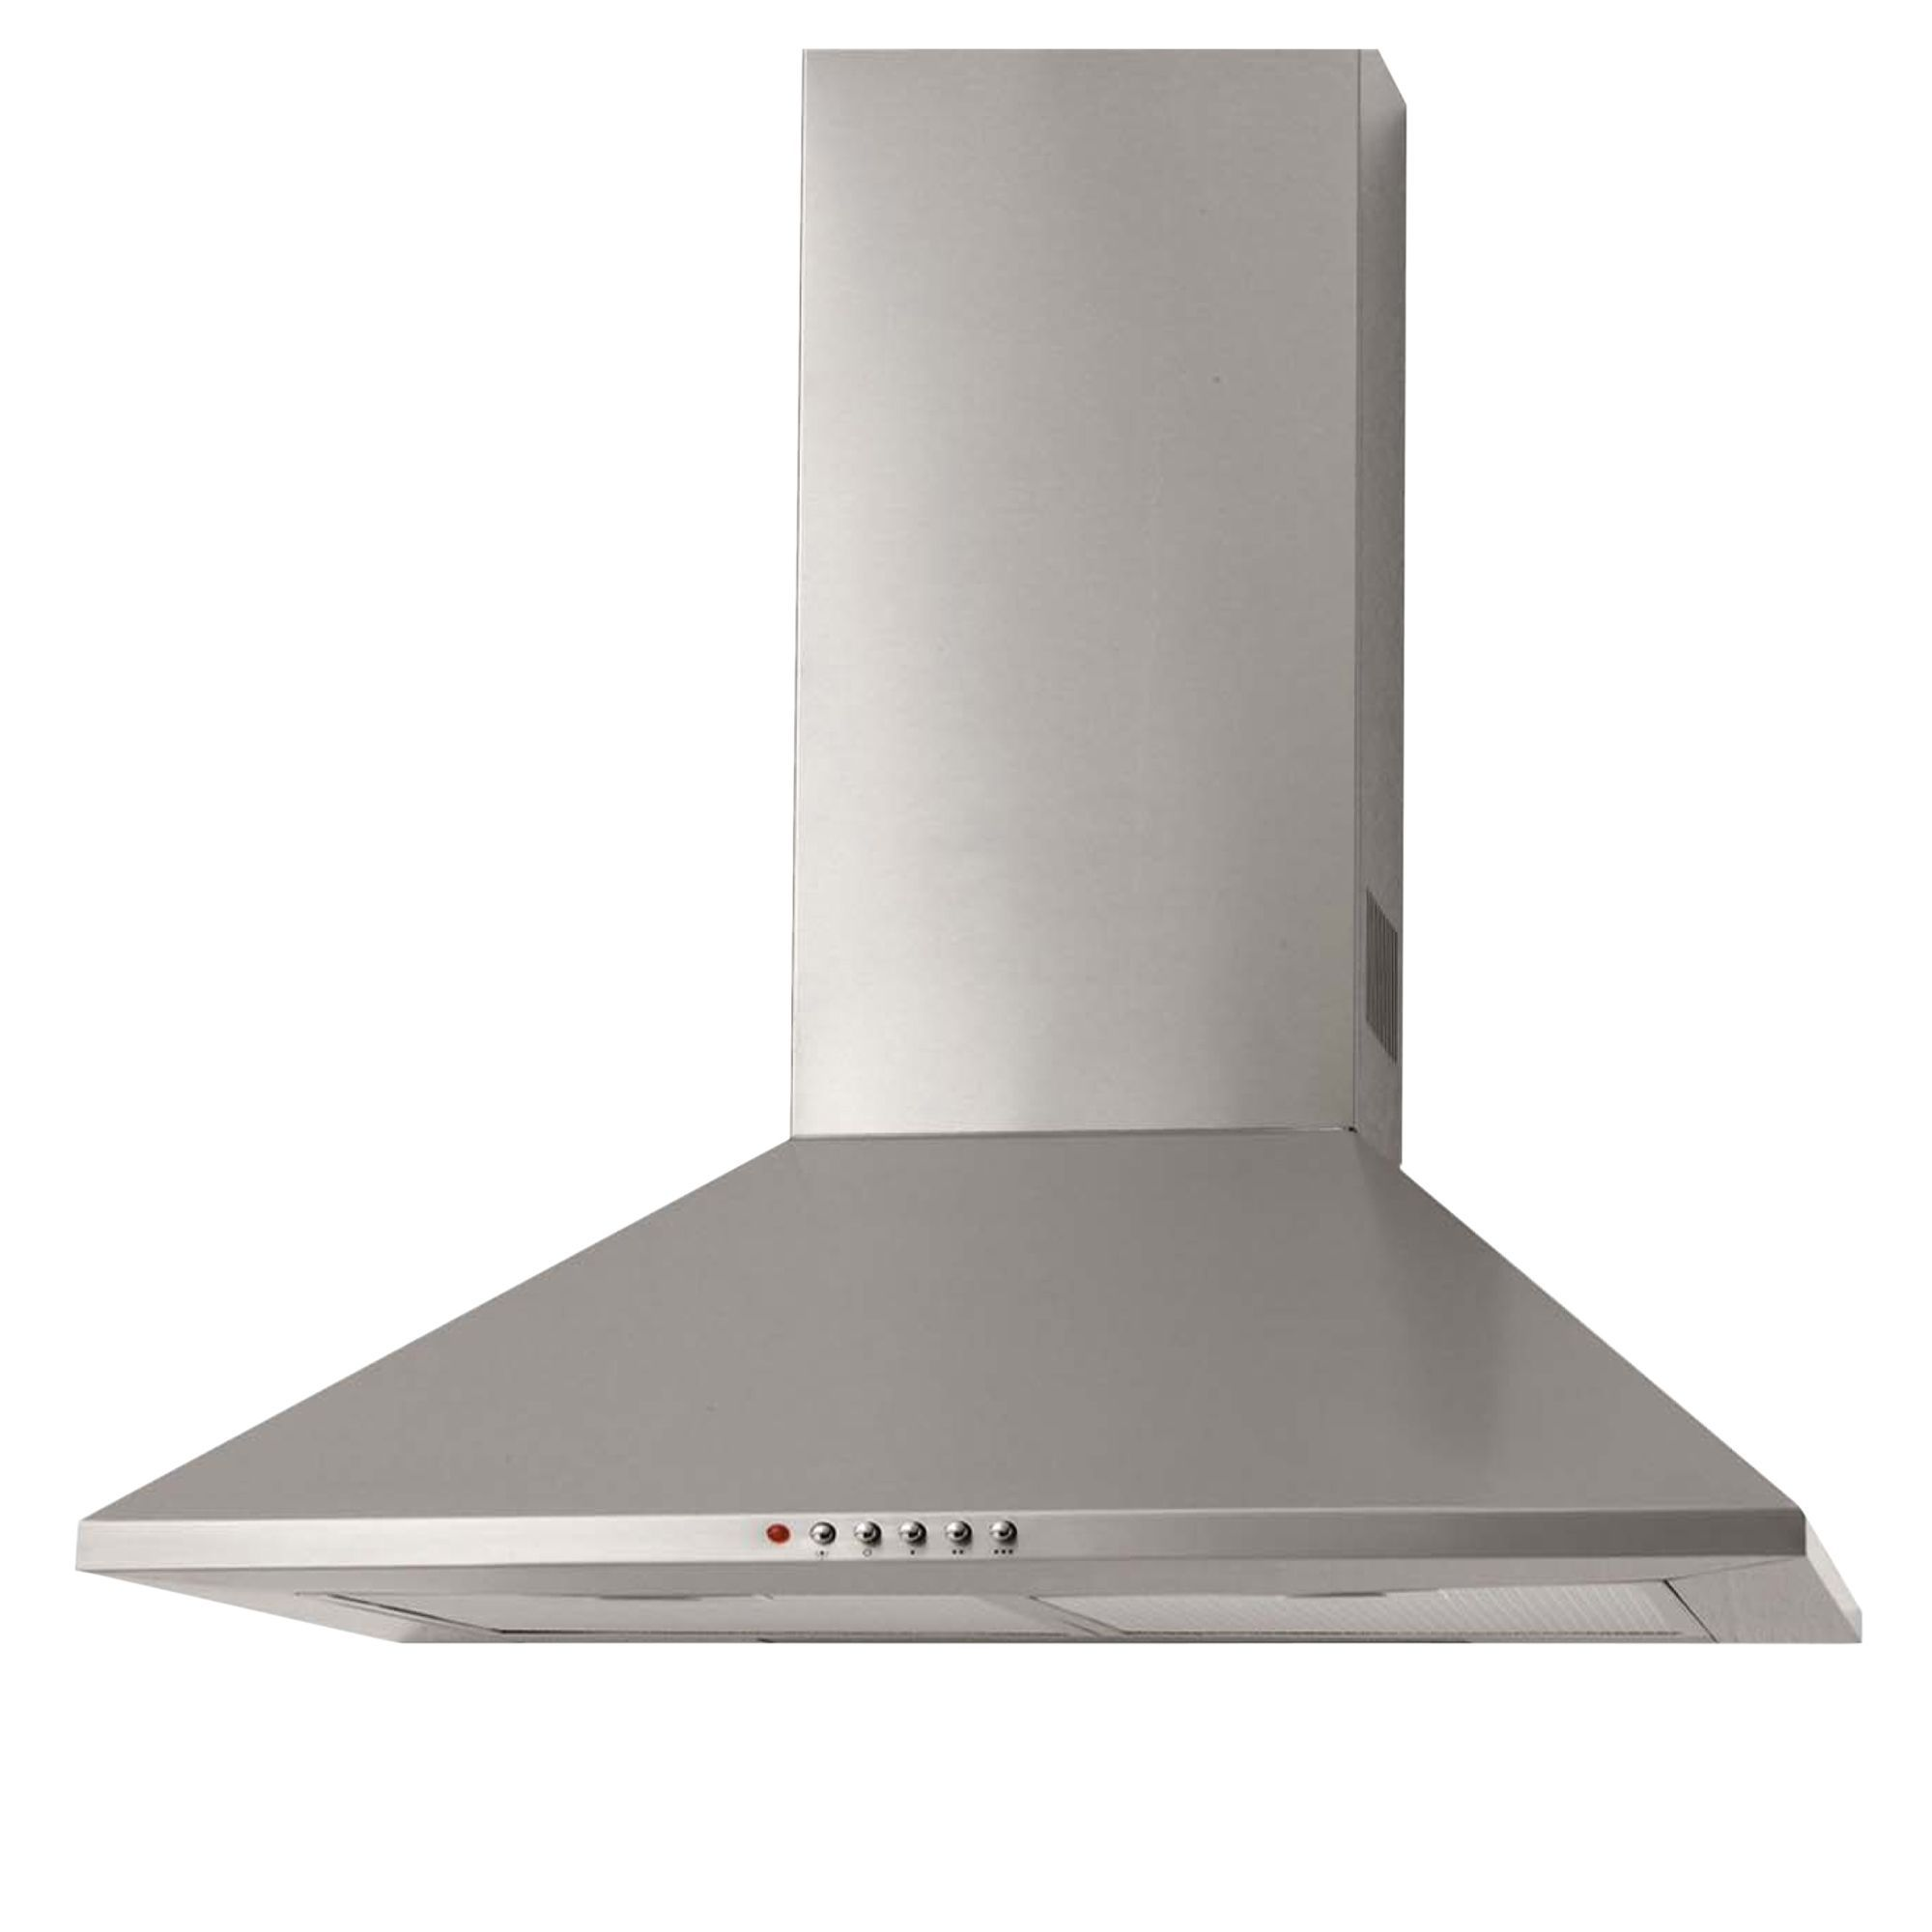 Cata Chk60ss Stainless Steel Chimney Cooker Hood W 600mm Departments Diy At B Amp Q